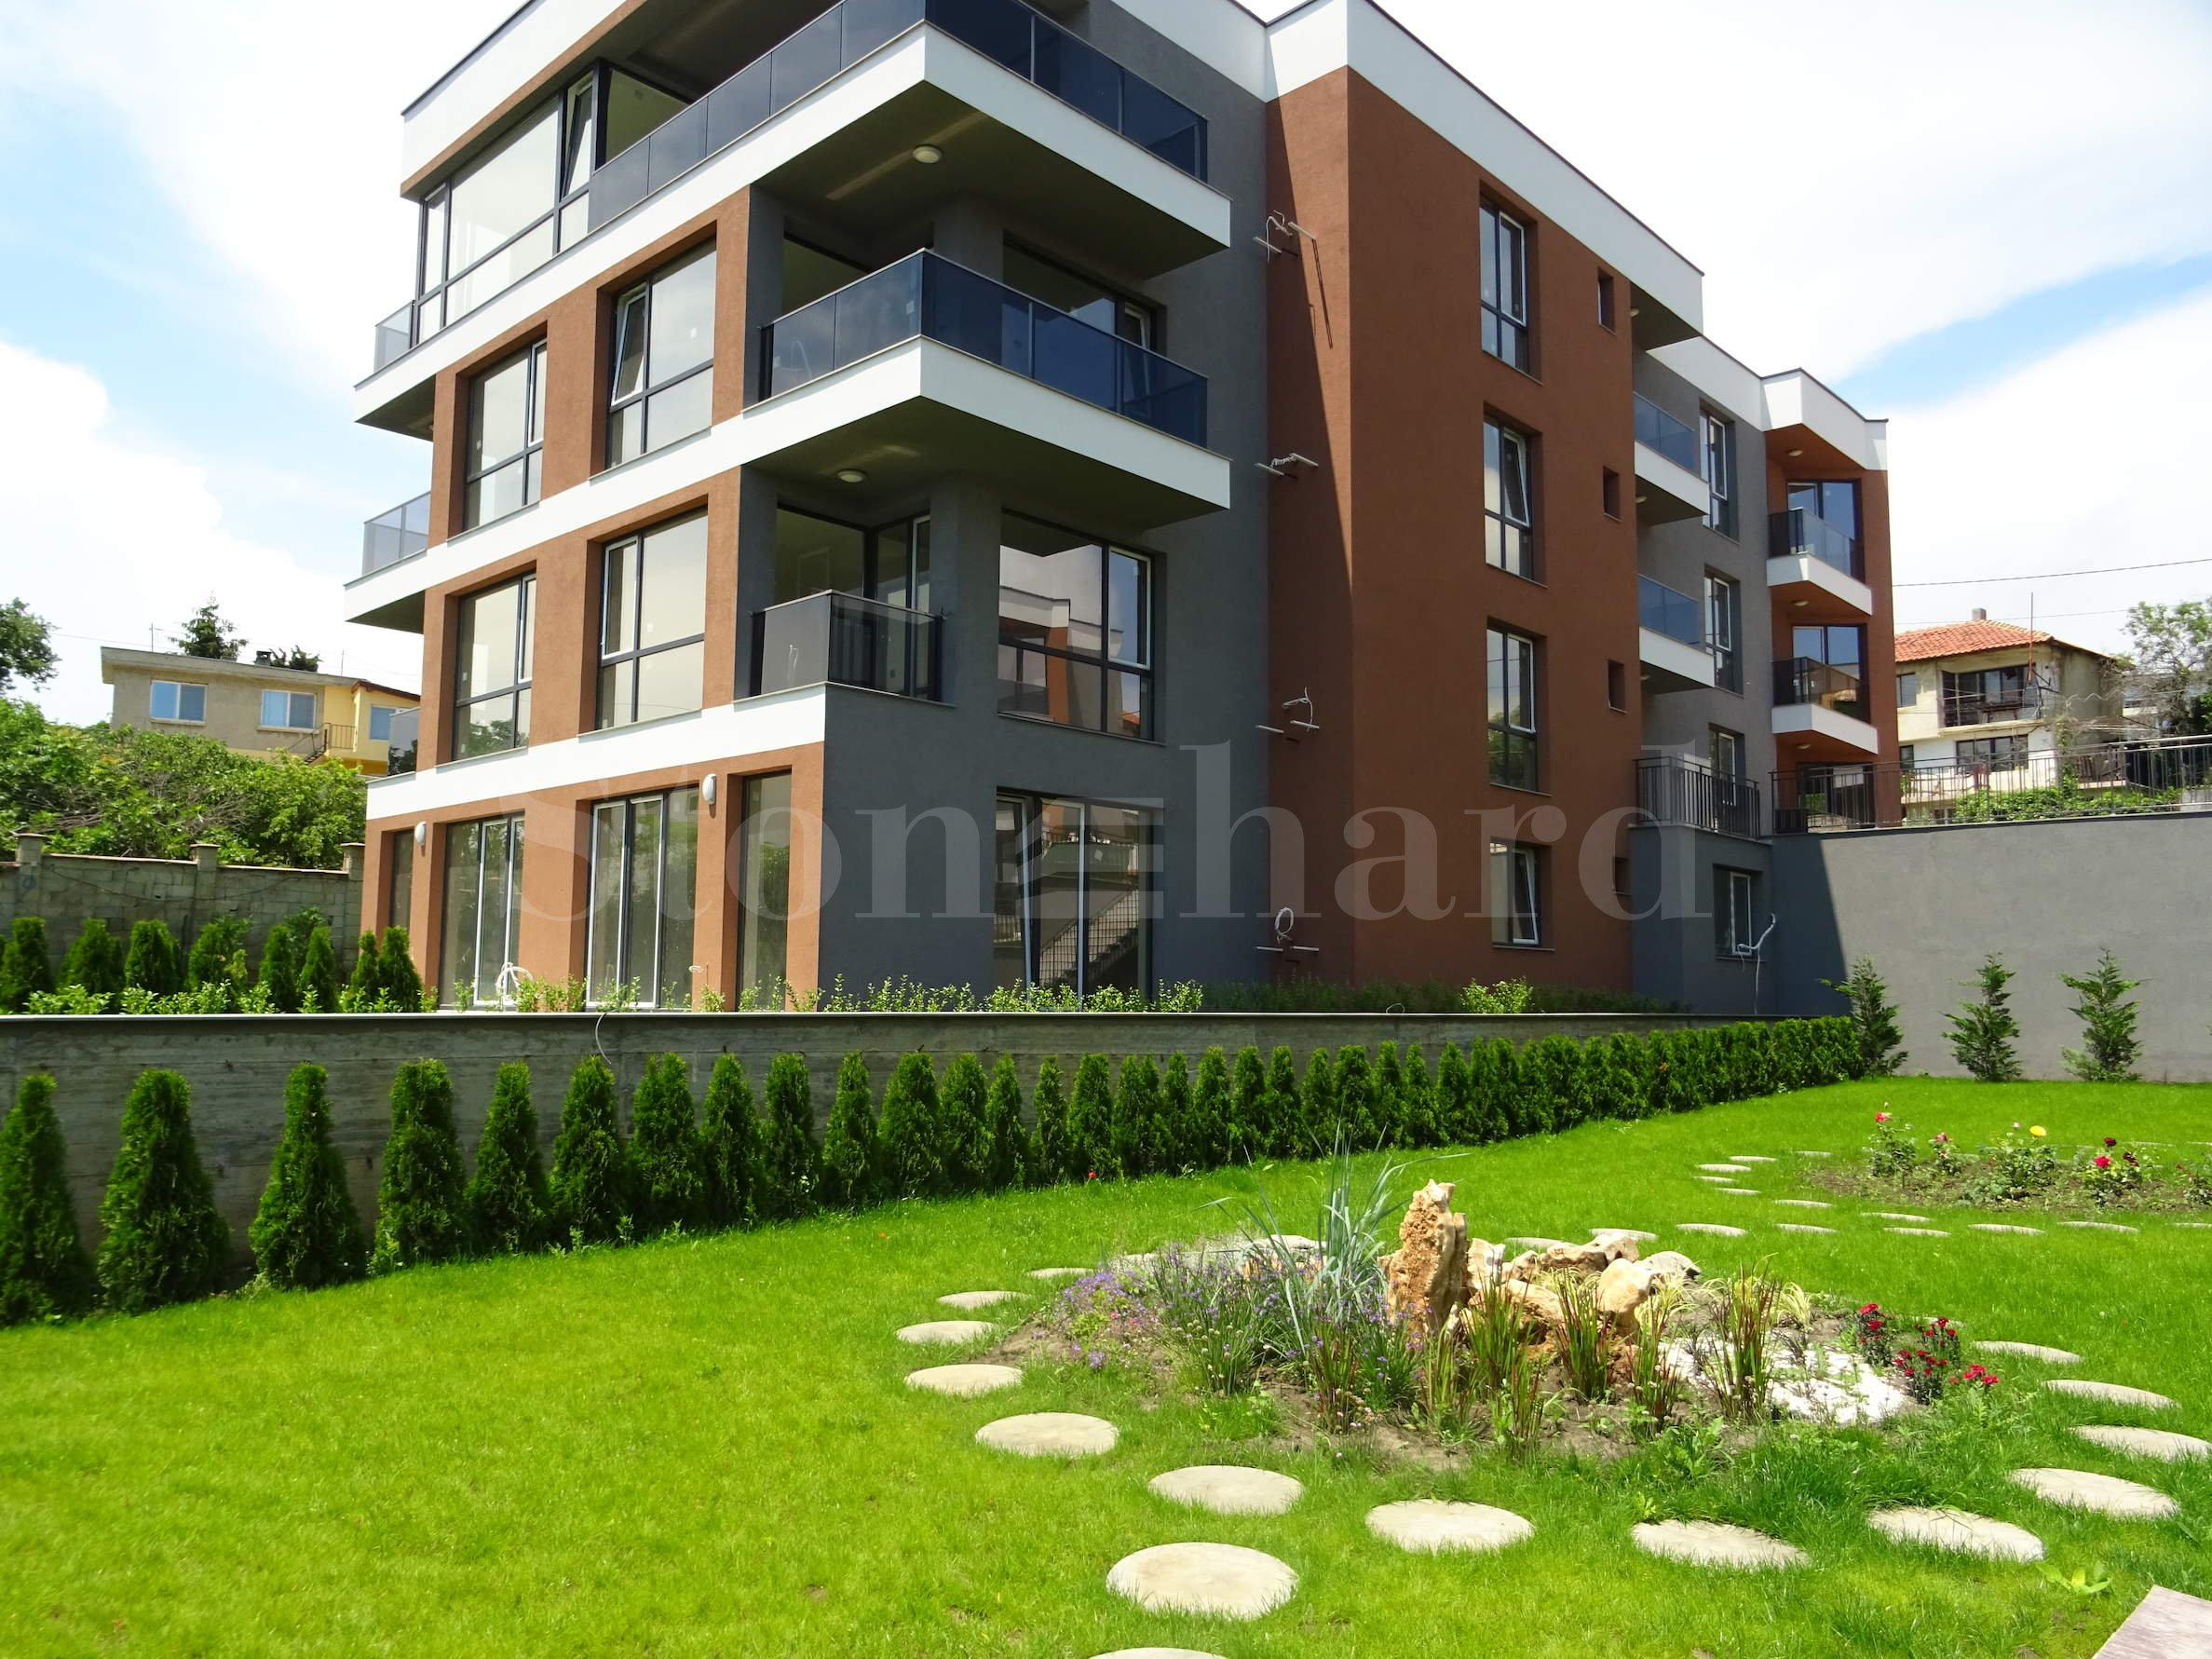 New residential project in Trakata district near Varna, Bulgaria1 - Stonehard